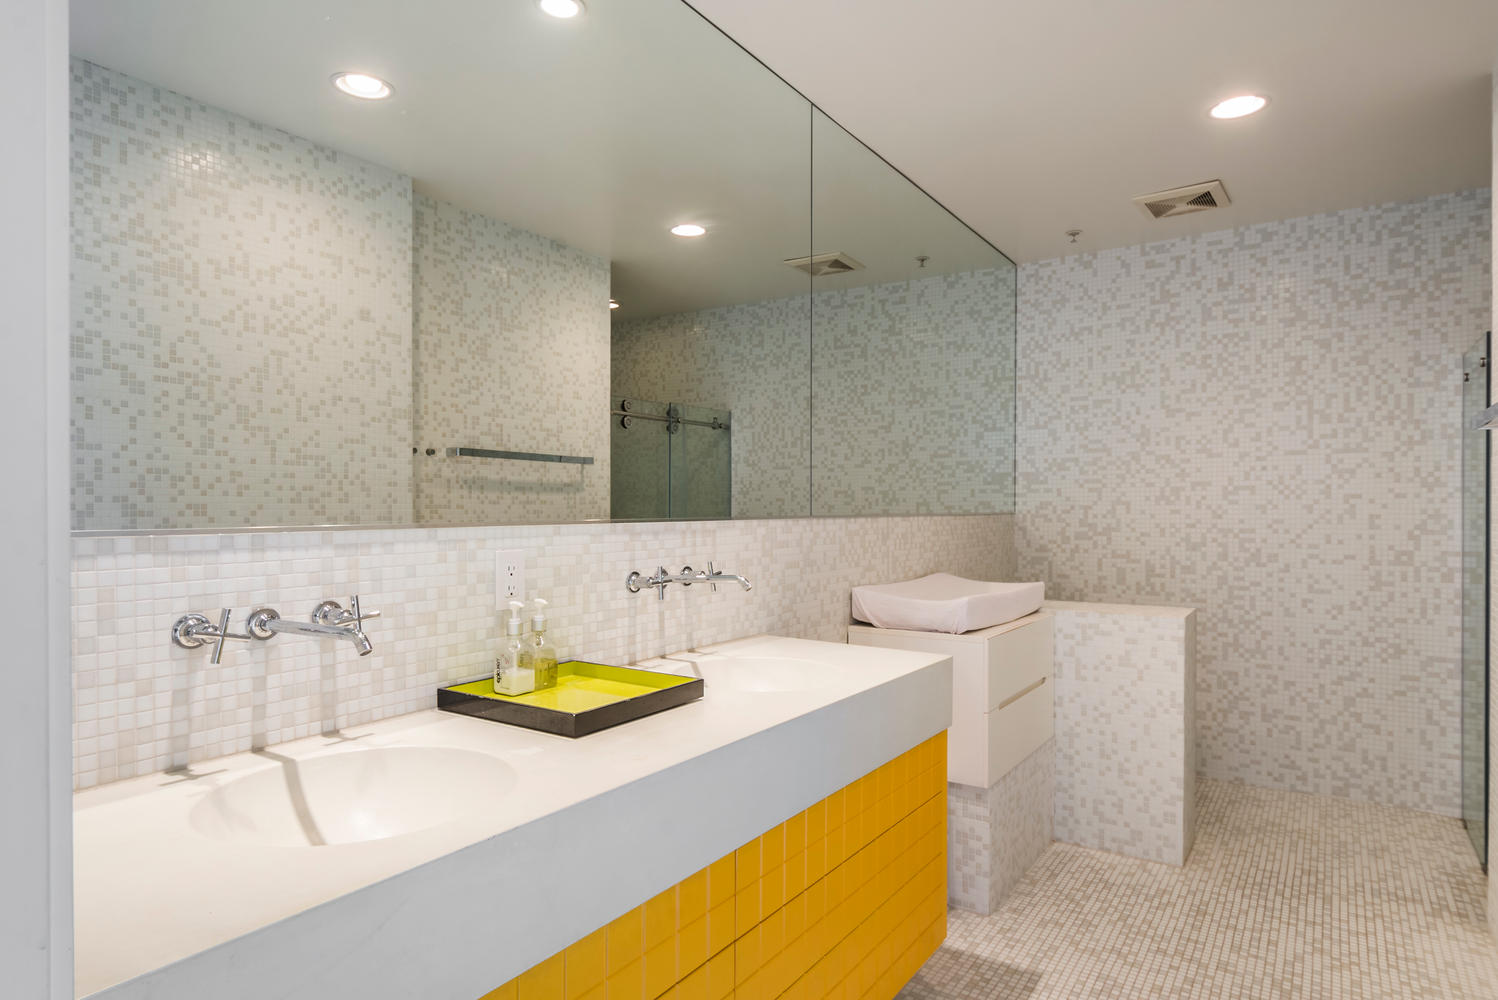 1100 East 3rd Street-large-016-16-Bathroom-1499x1000-72dpi.jpg